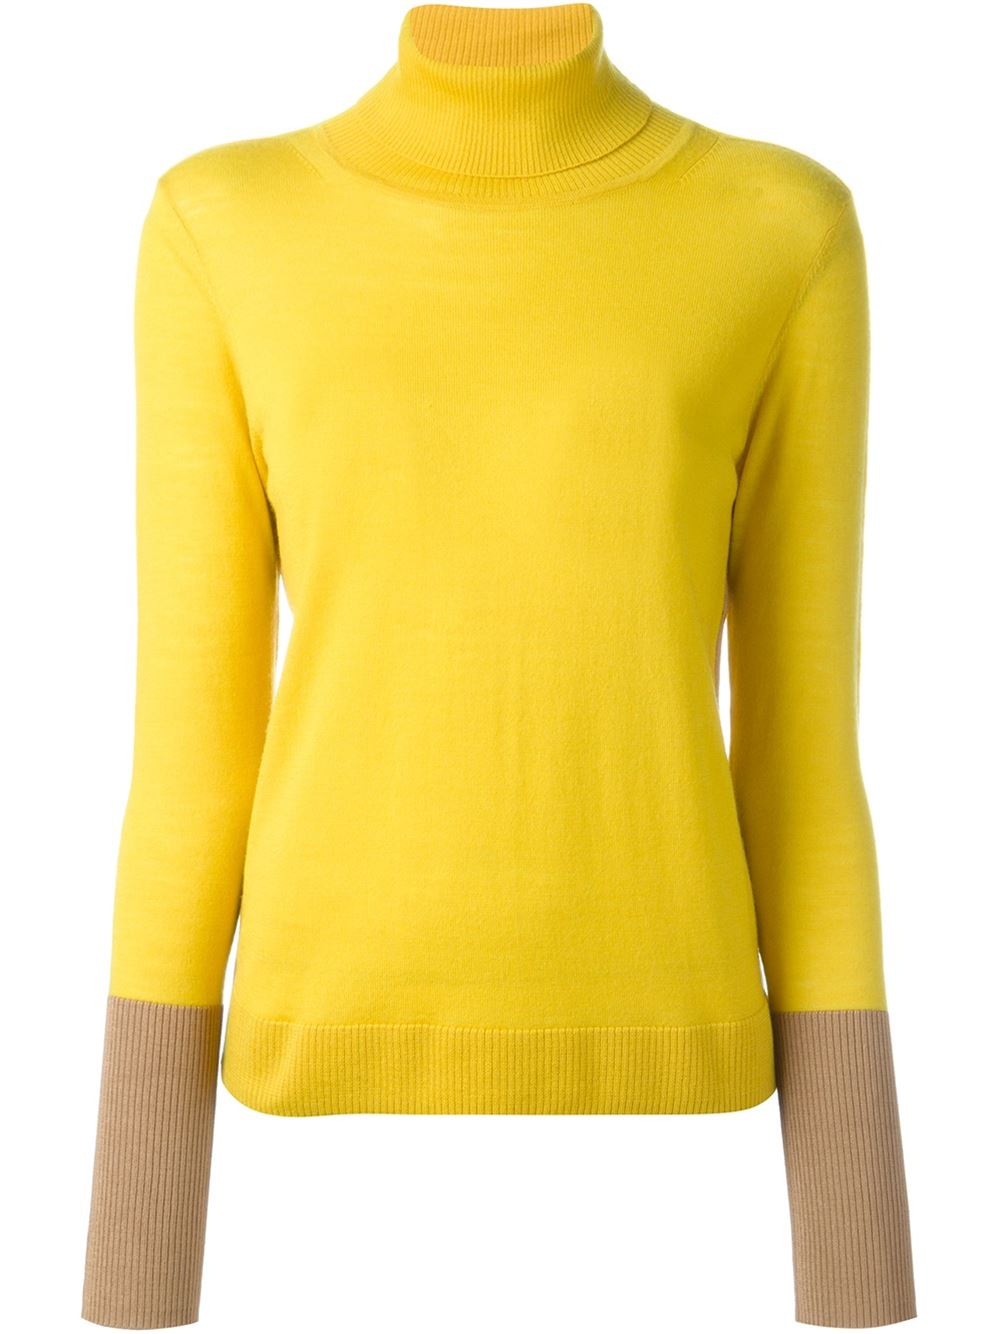 Yellow stretch merino wool blend colour block turtleneck sweater from Rag and Bone